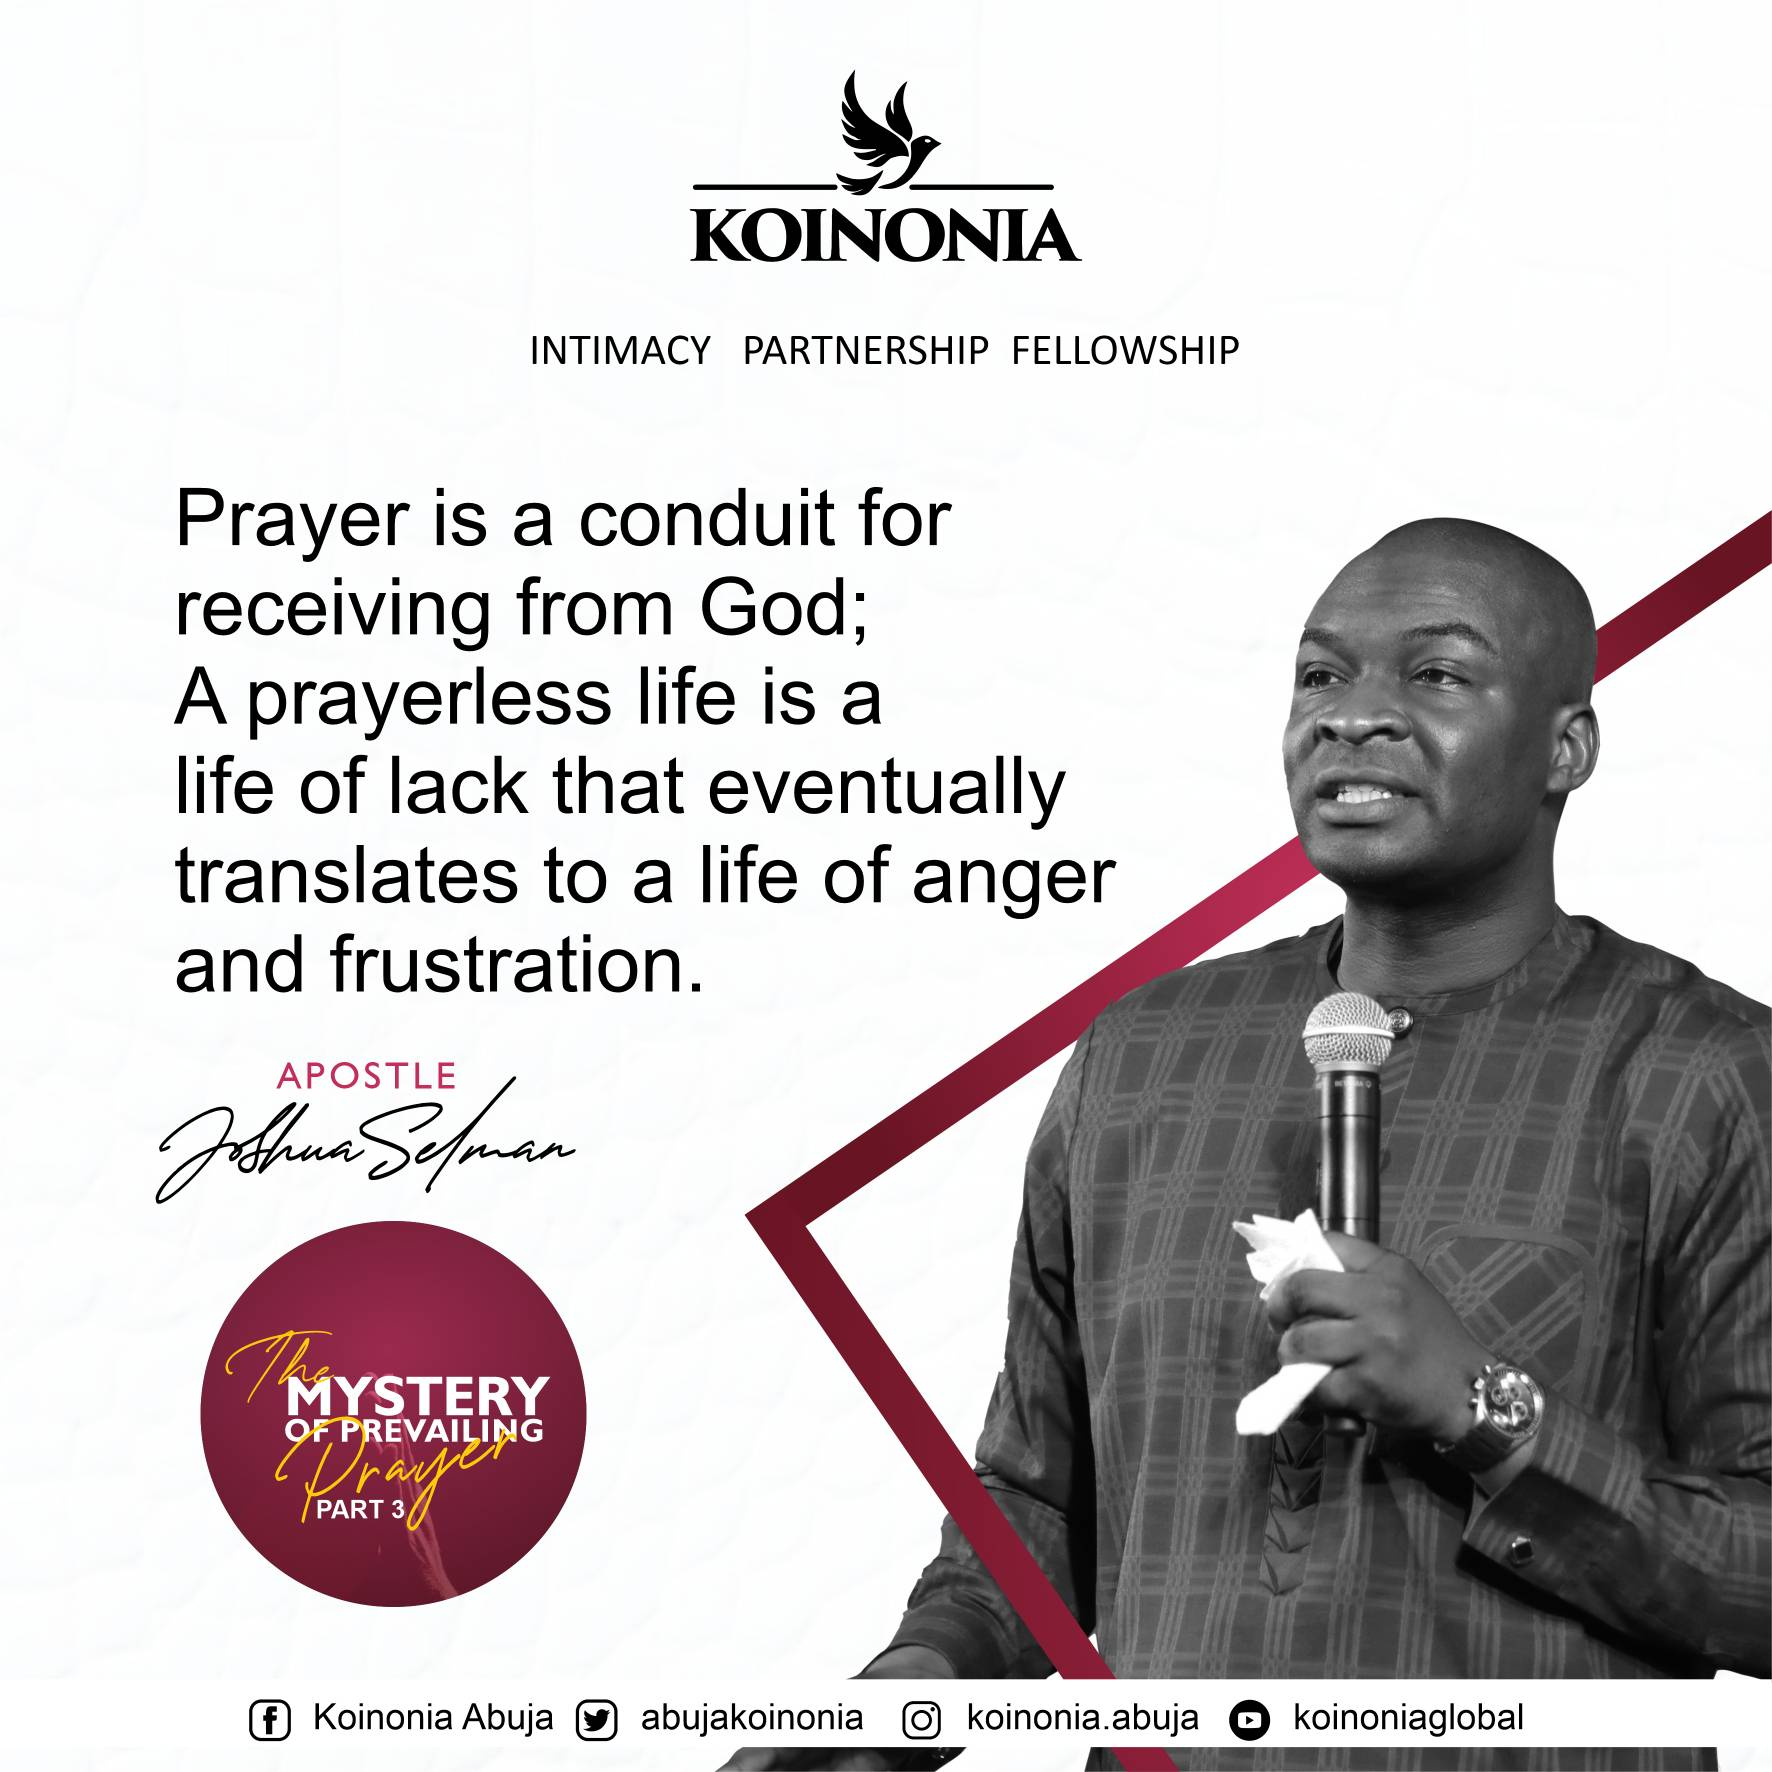 Download The Mystery of Prevailing Prayer Part Three Koinonia Abuja with Apostle Joshua Selman